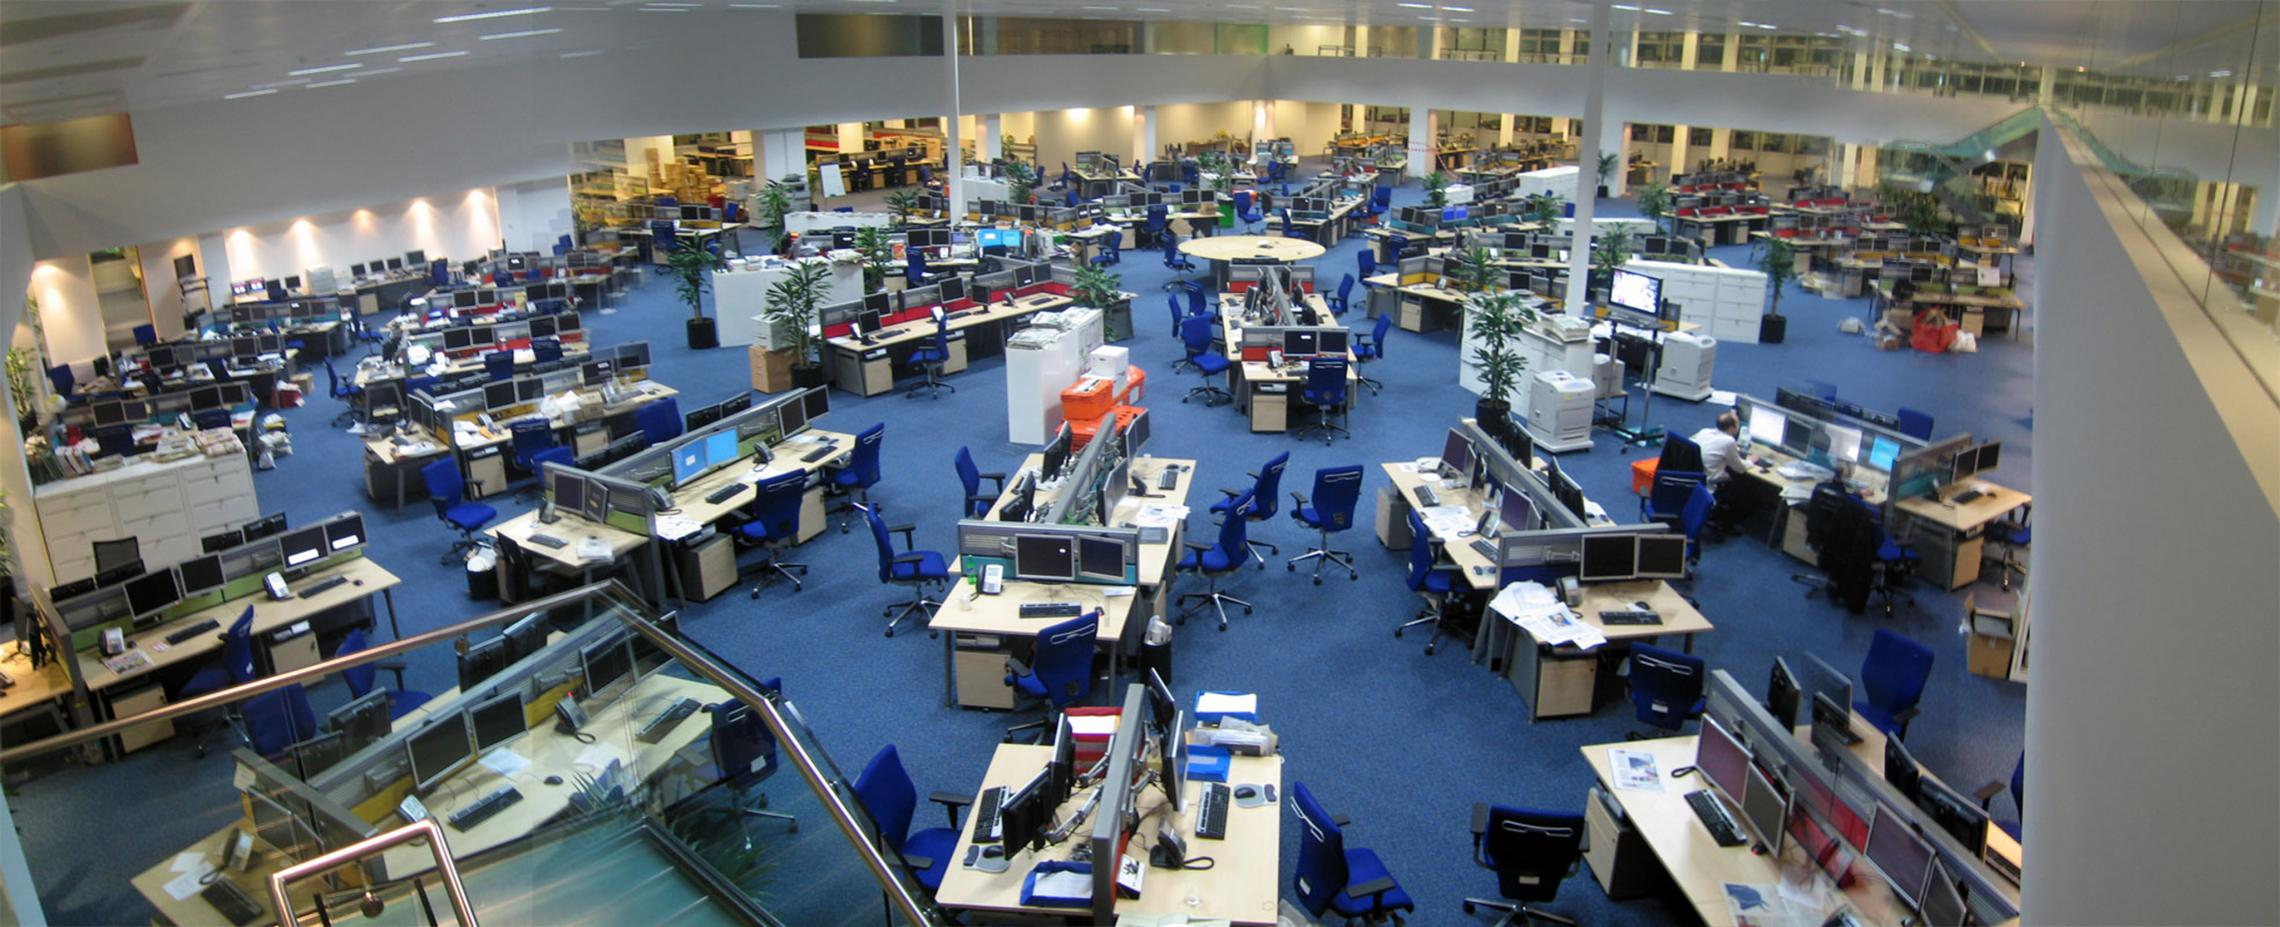 This photo shows a large open news room with enough space to seat about 200 employees.